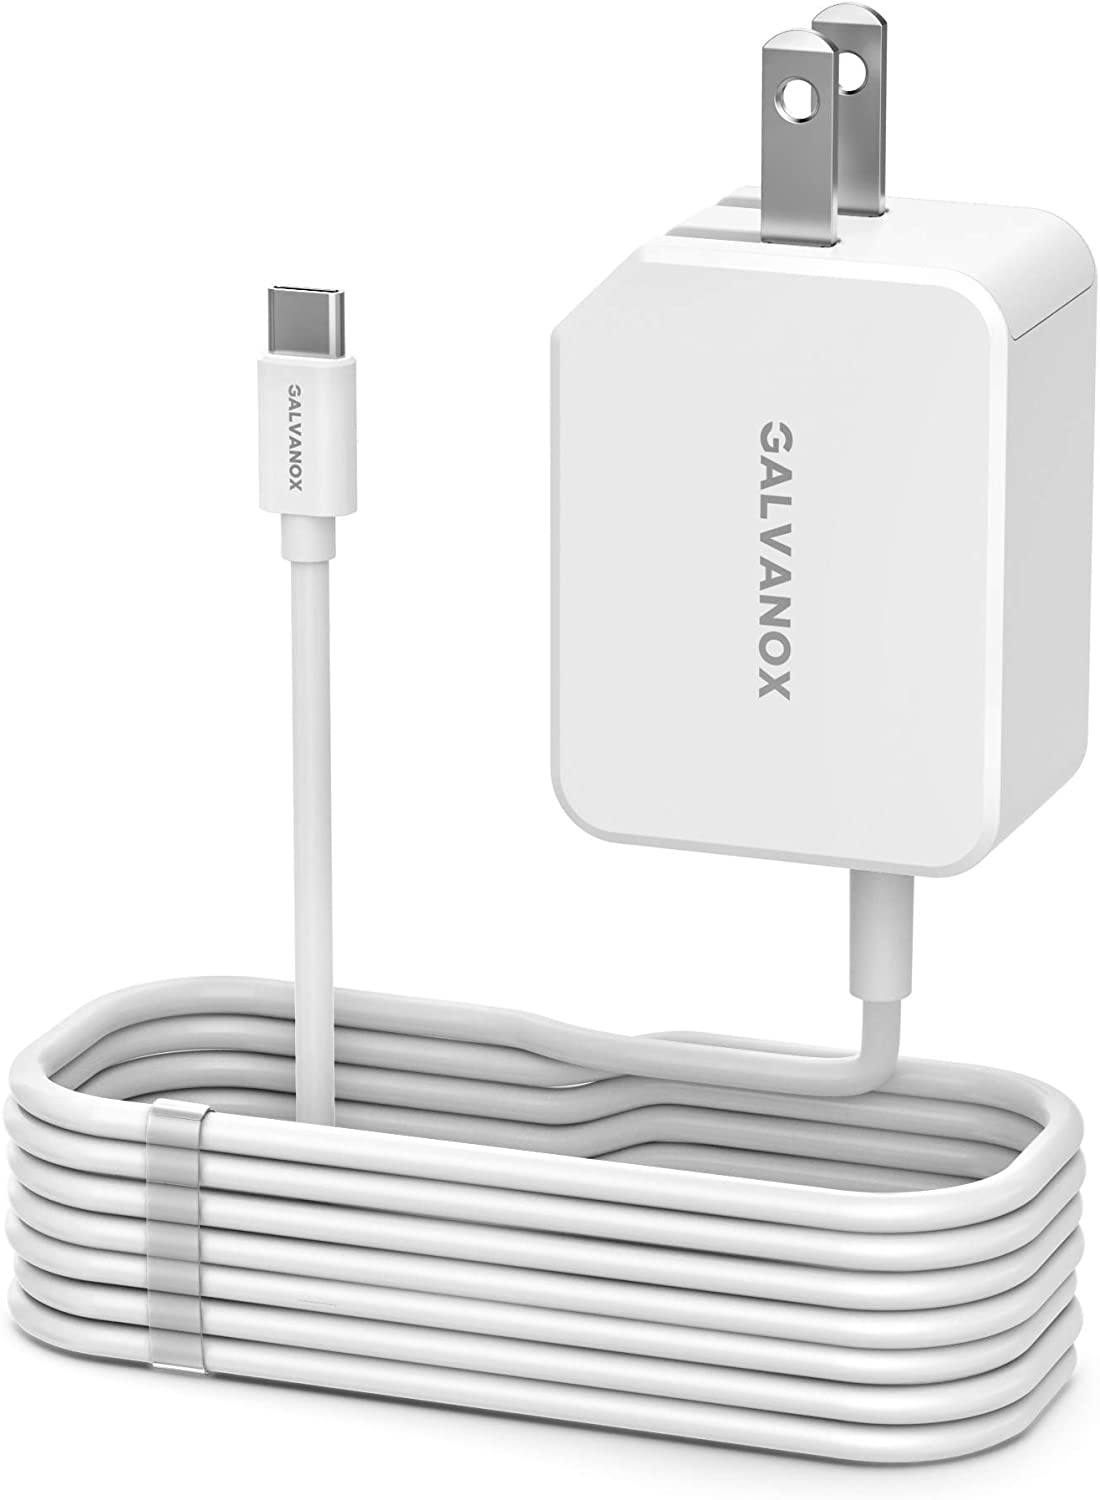 Galvanox Rapid Charger for All Google Pixel Models | Wall Plug Travel Adapter with Folding Prongs | Built in USB-C Cable for Pixel 2,3,3a,4,4XL/4a (PD 18W Output)